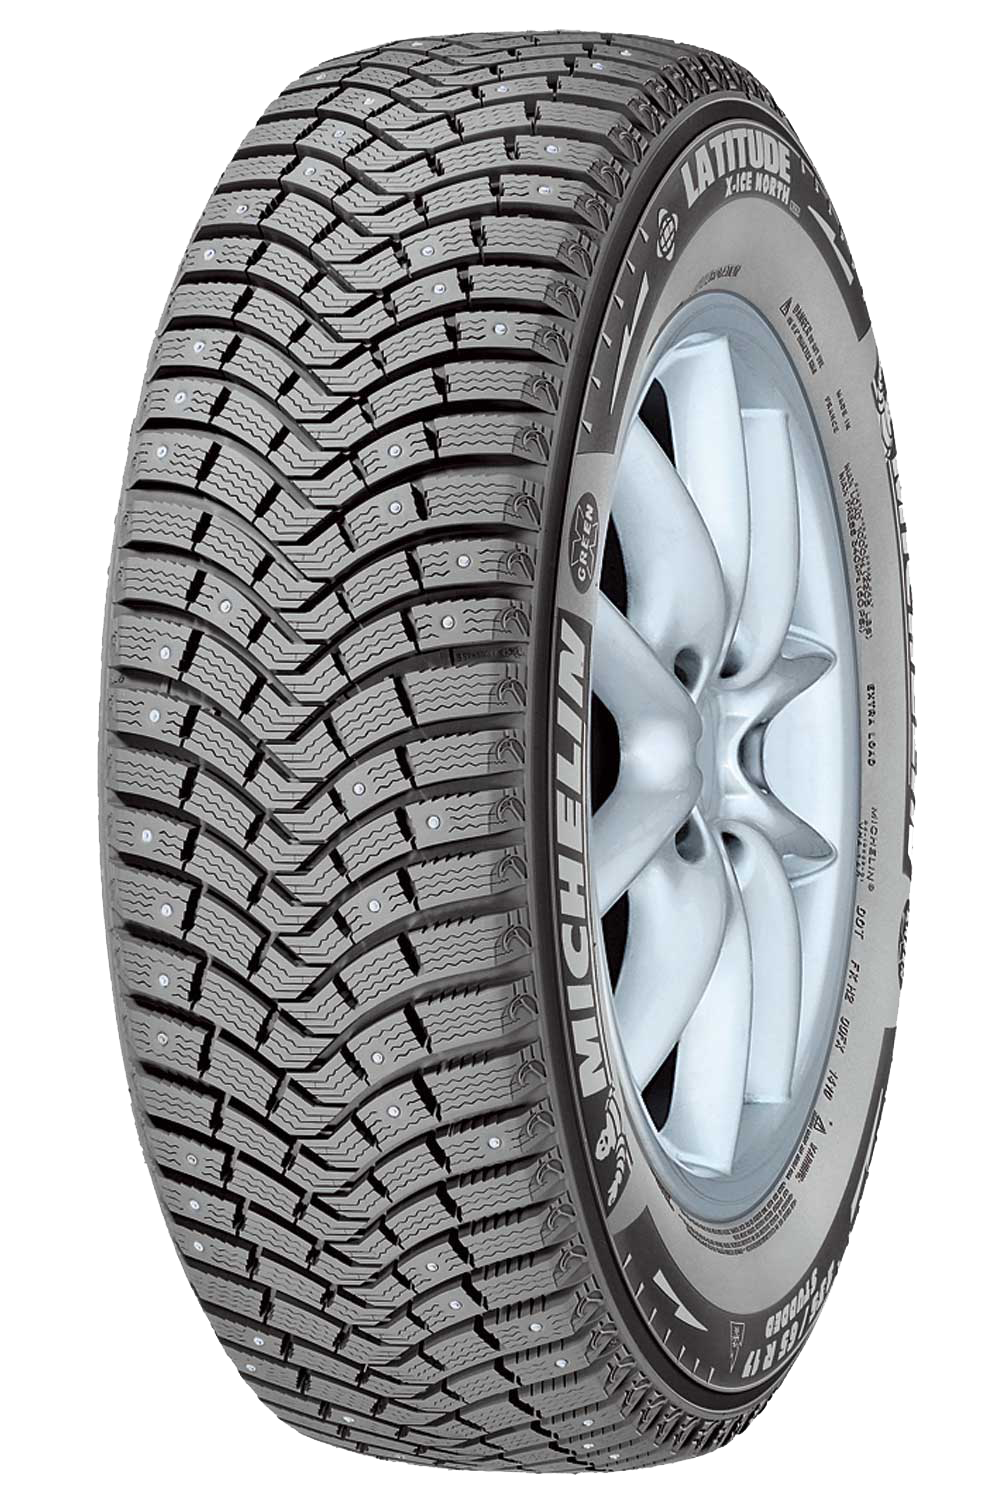 Зимняя шипованная шина Michelin Latitude X-Ice North XIN2 plus 255/55 R20 110T XL